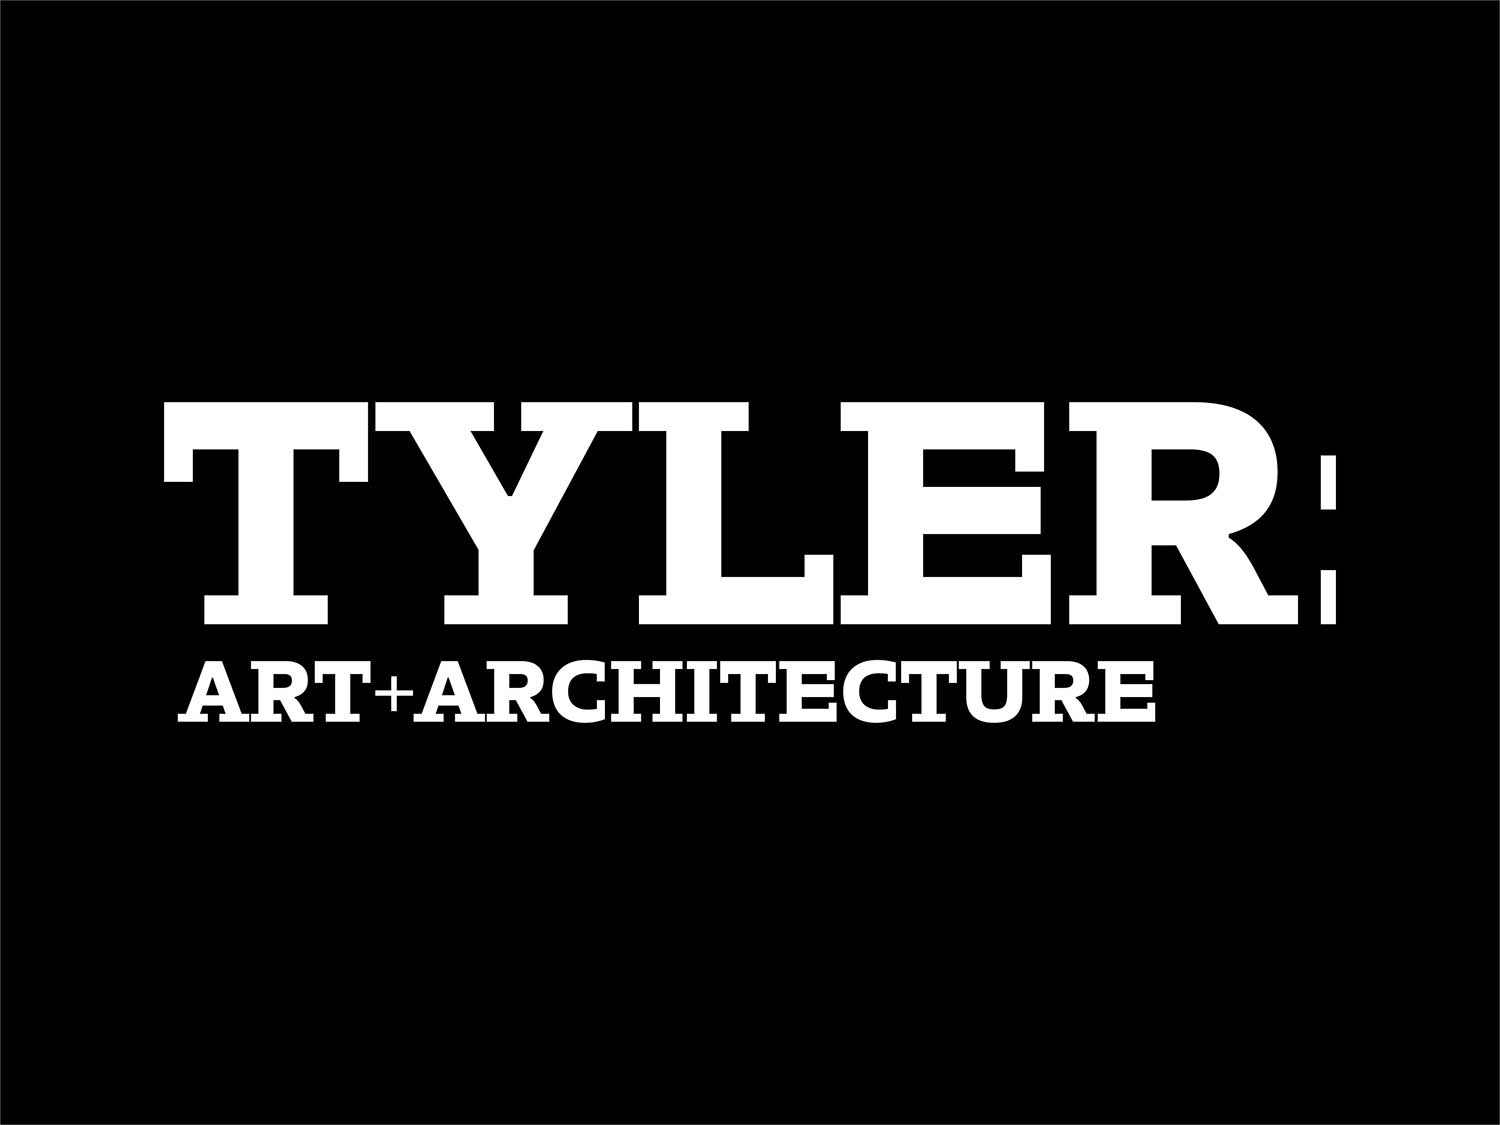 Tyler School of Art and Architecture Identity